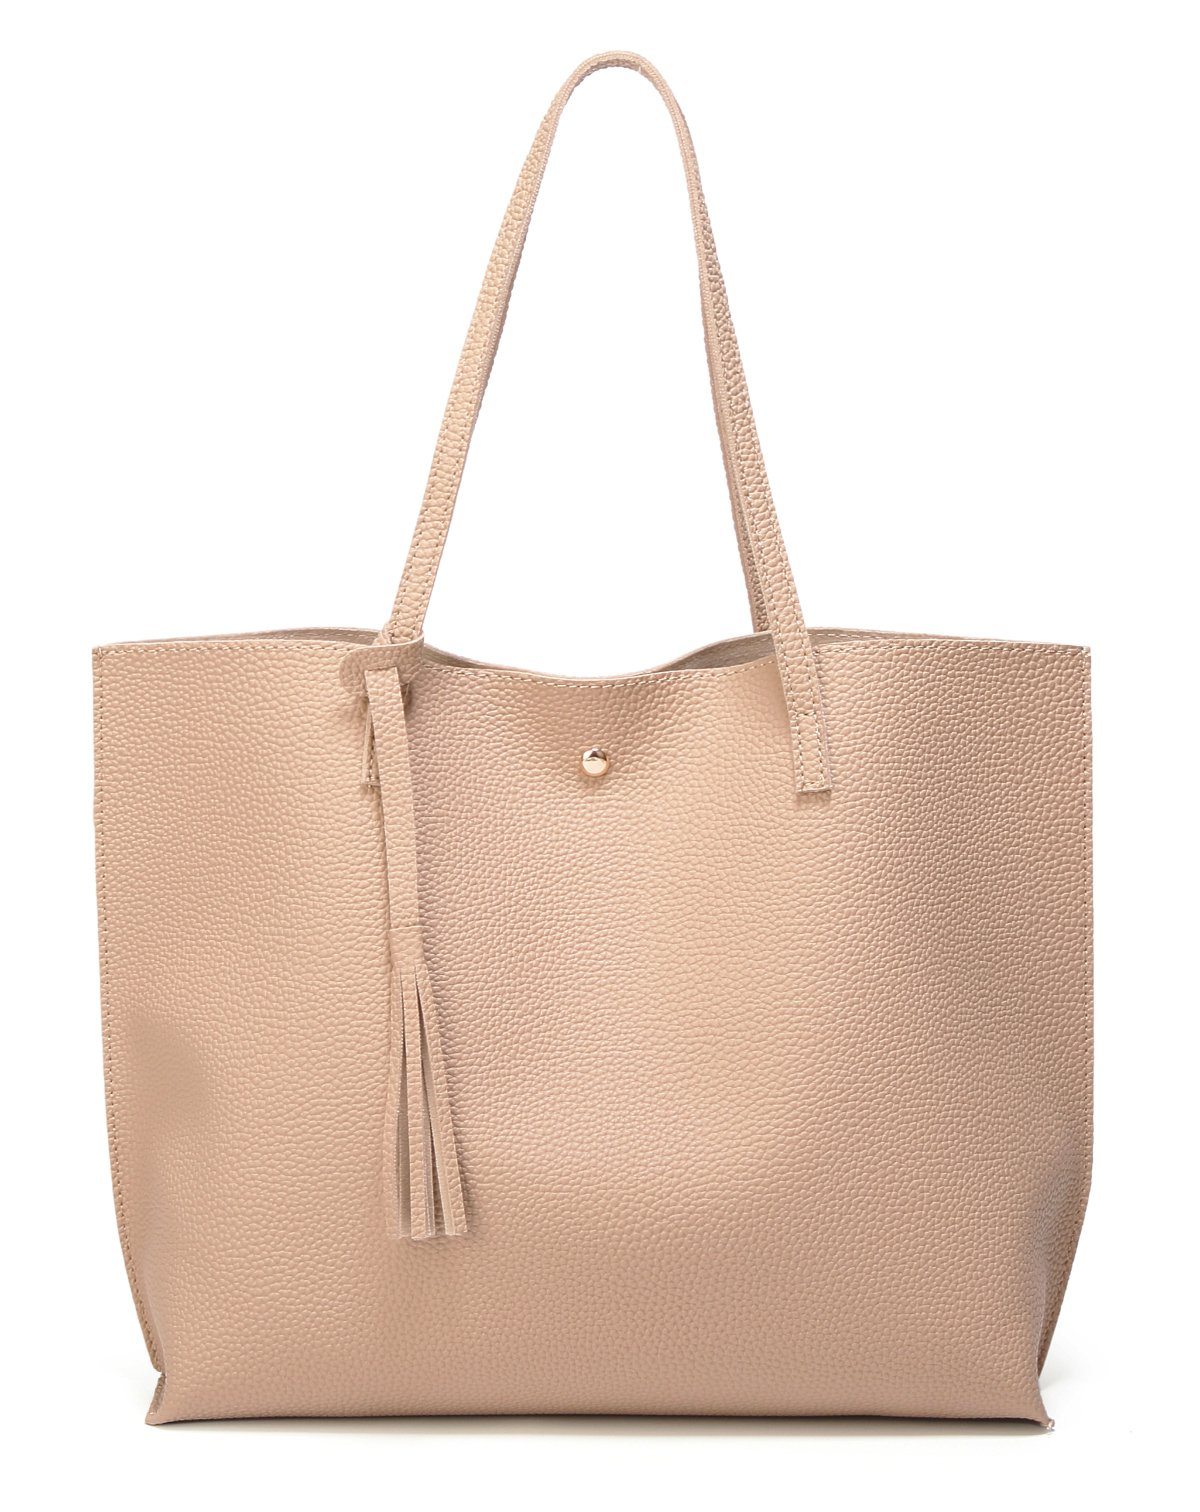 Women's Soft Leather Tote Shoulder Bag from Dreubea, Big Capacity Tassel Handbag Apricot